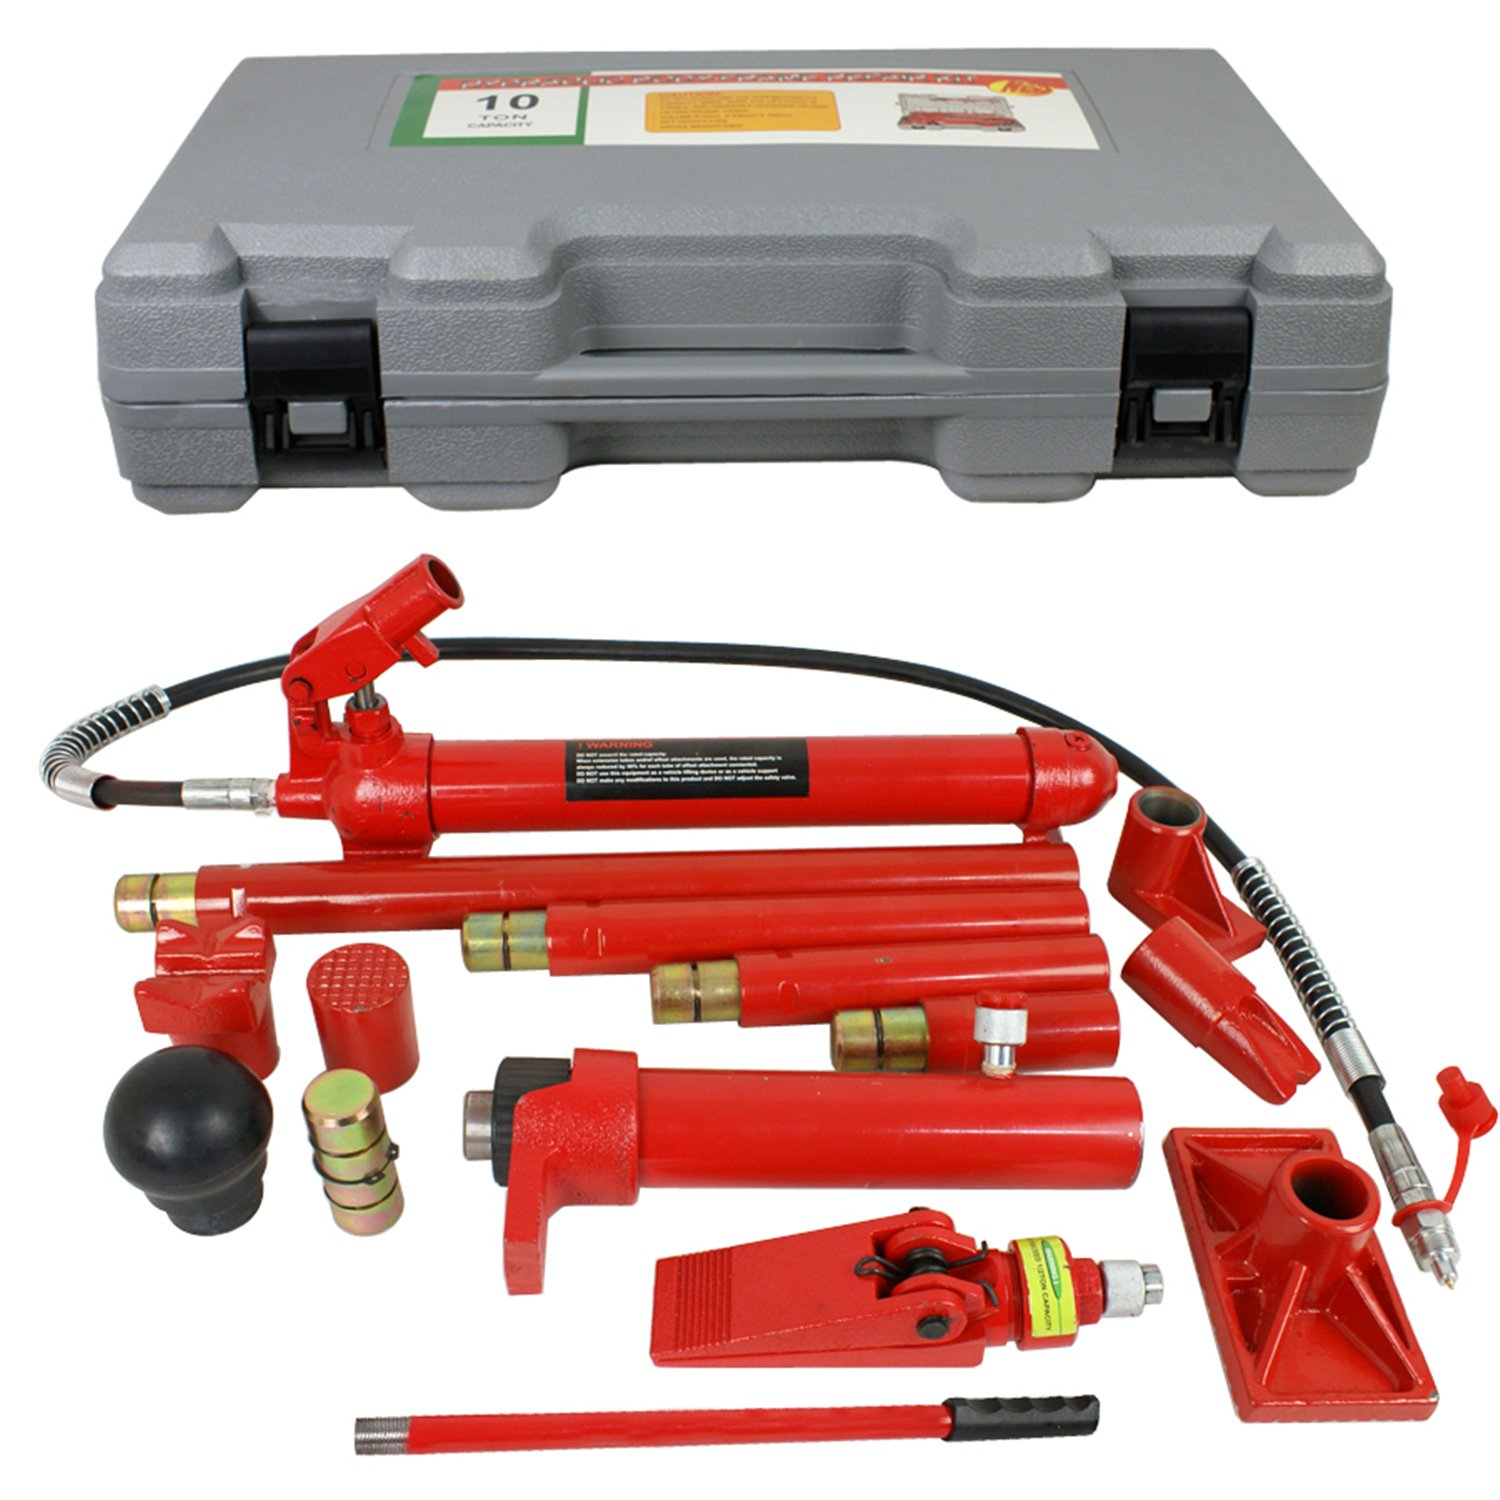 F2C 10 Ton Capacity Porta Power Hydraulic Bottle Air Jack Repair Tool Kit Power Set Auto Tool (10 Ton)